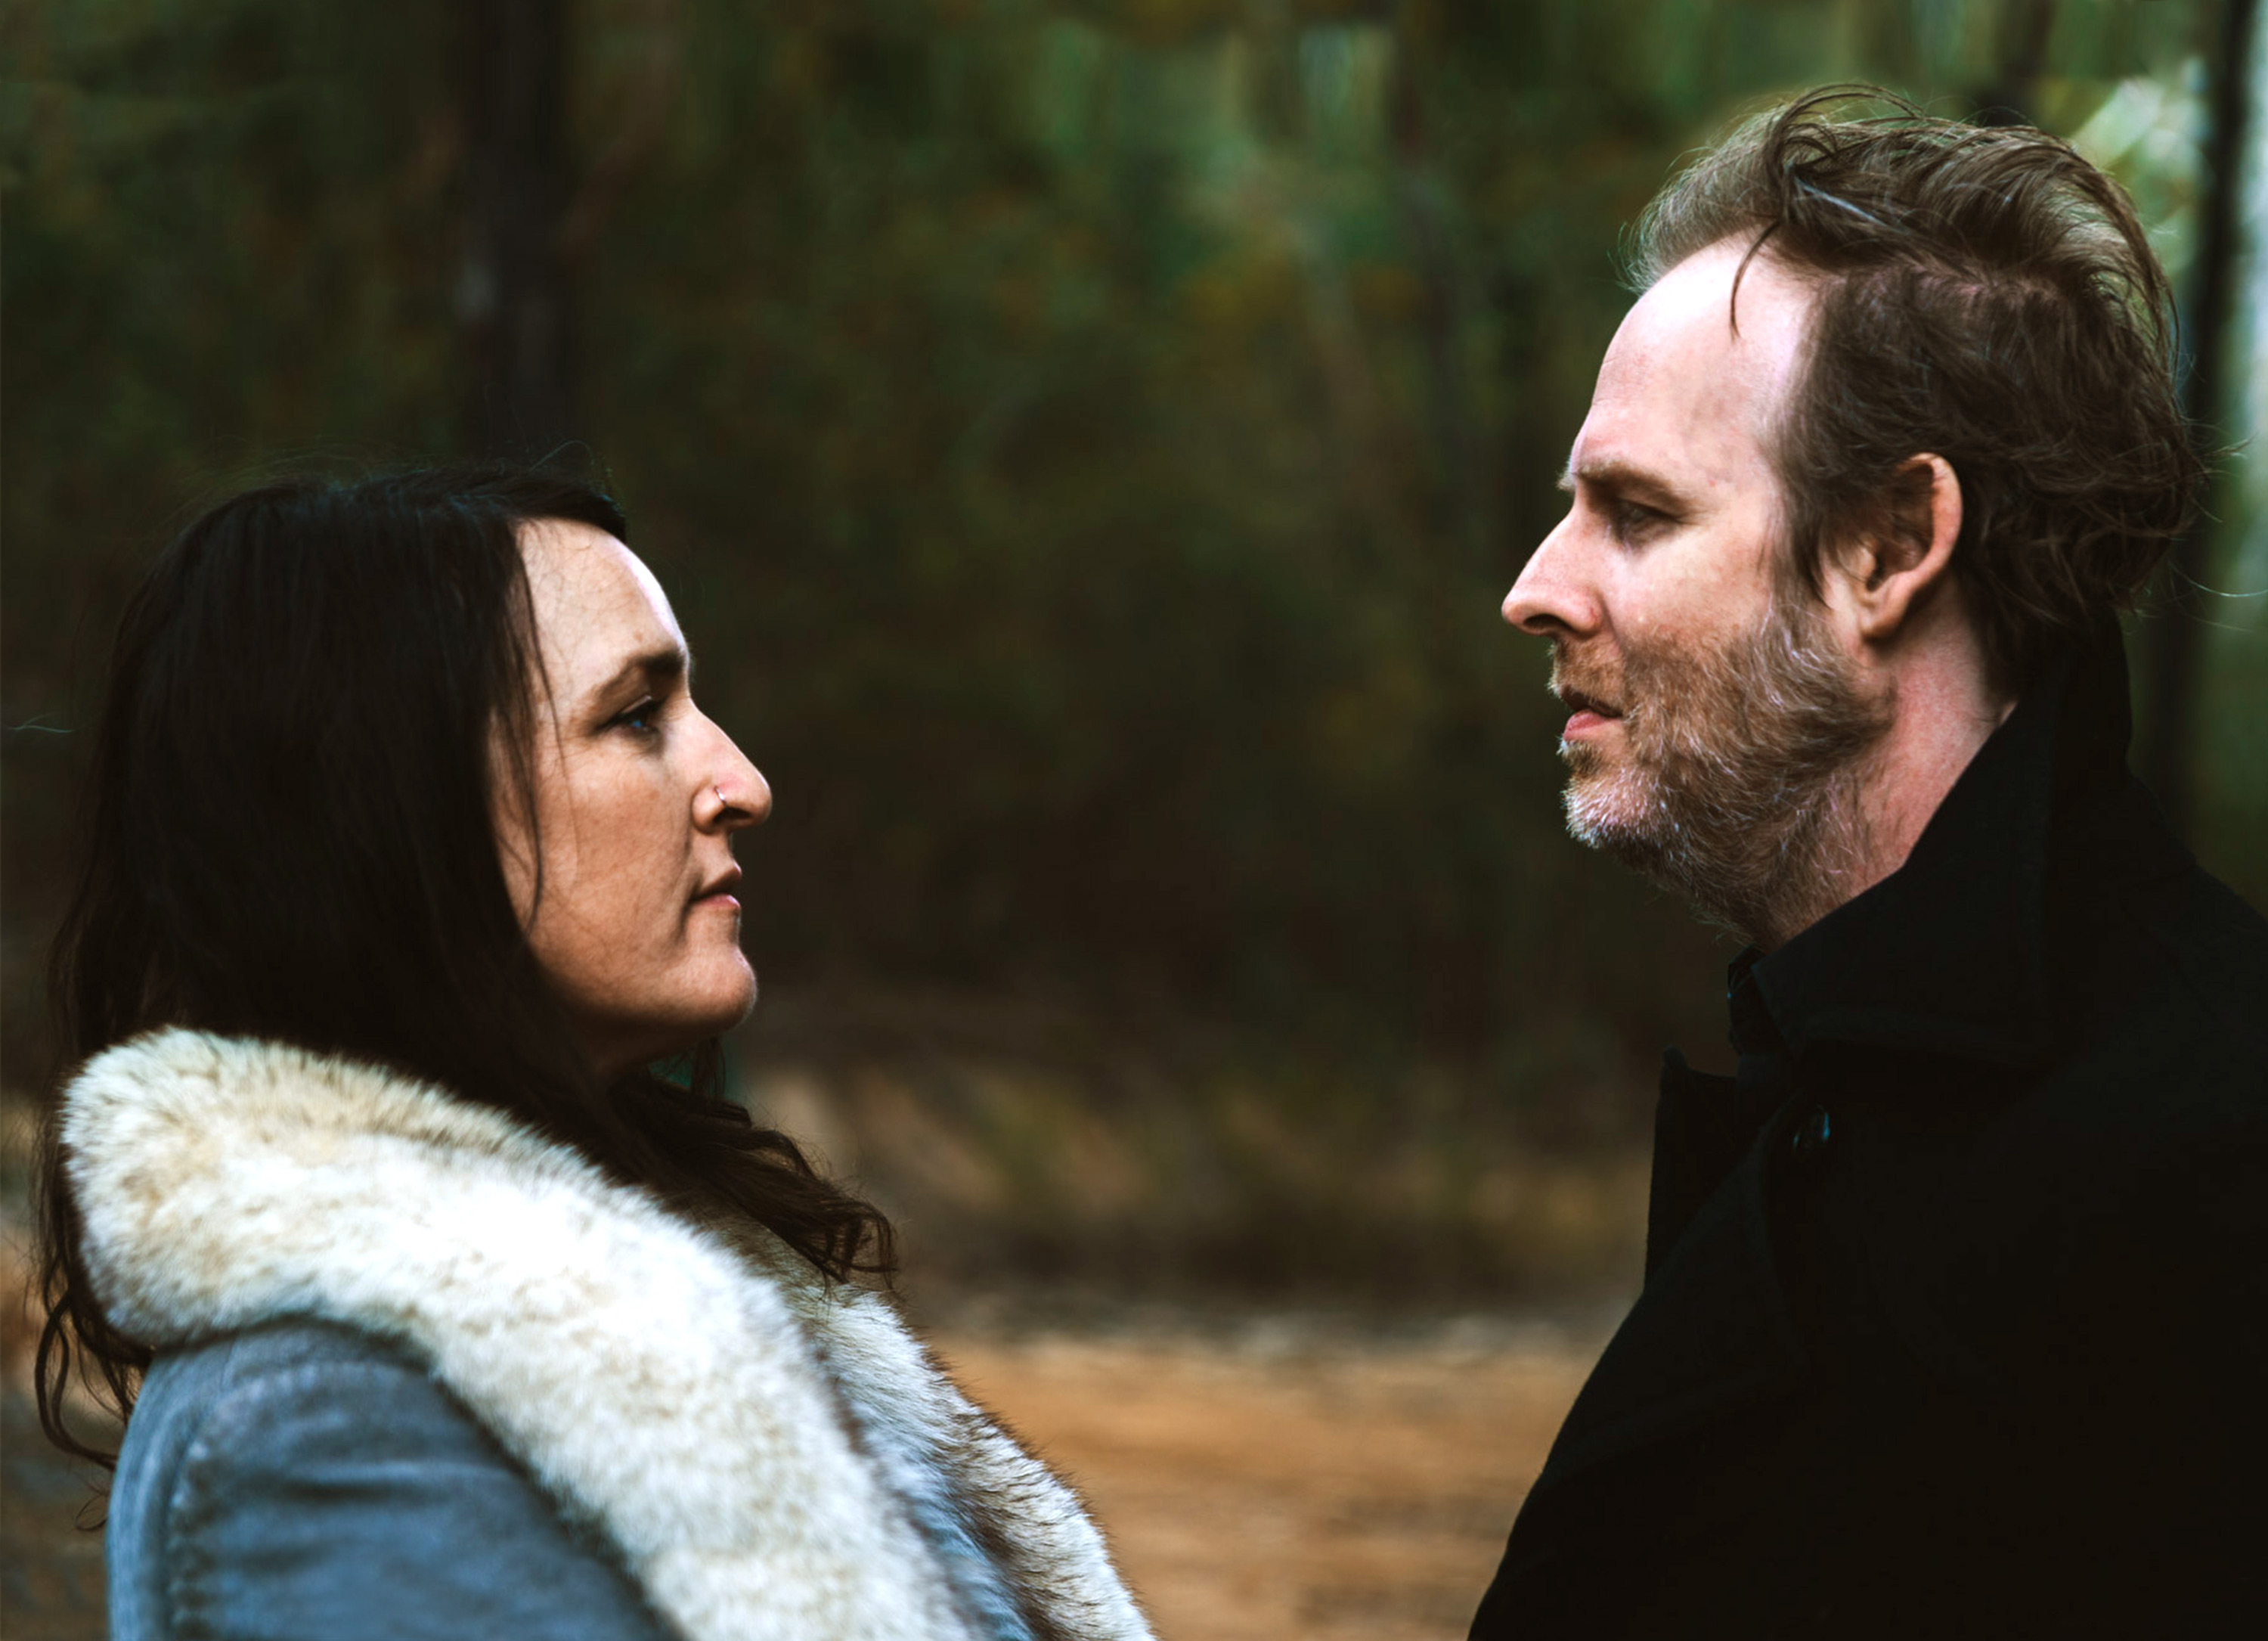 Photo of Katie and Brett looking at each other